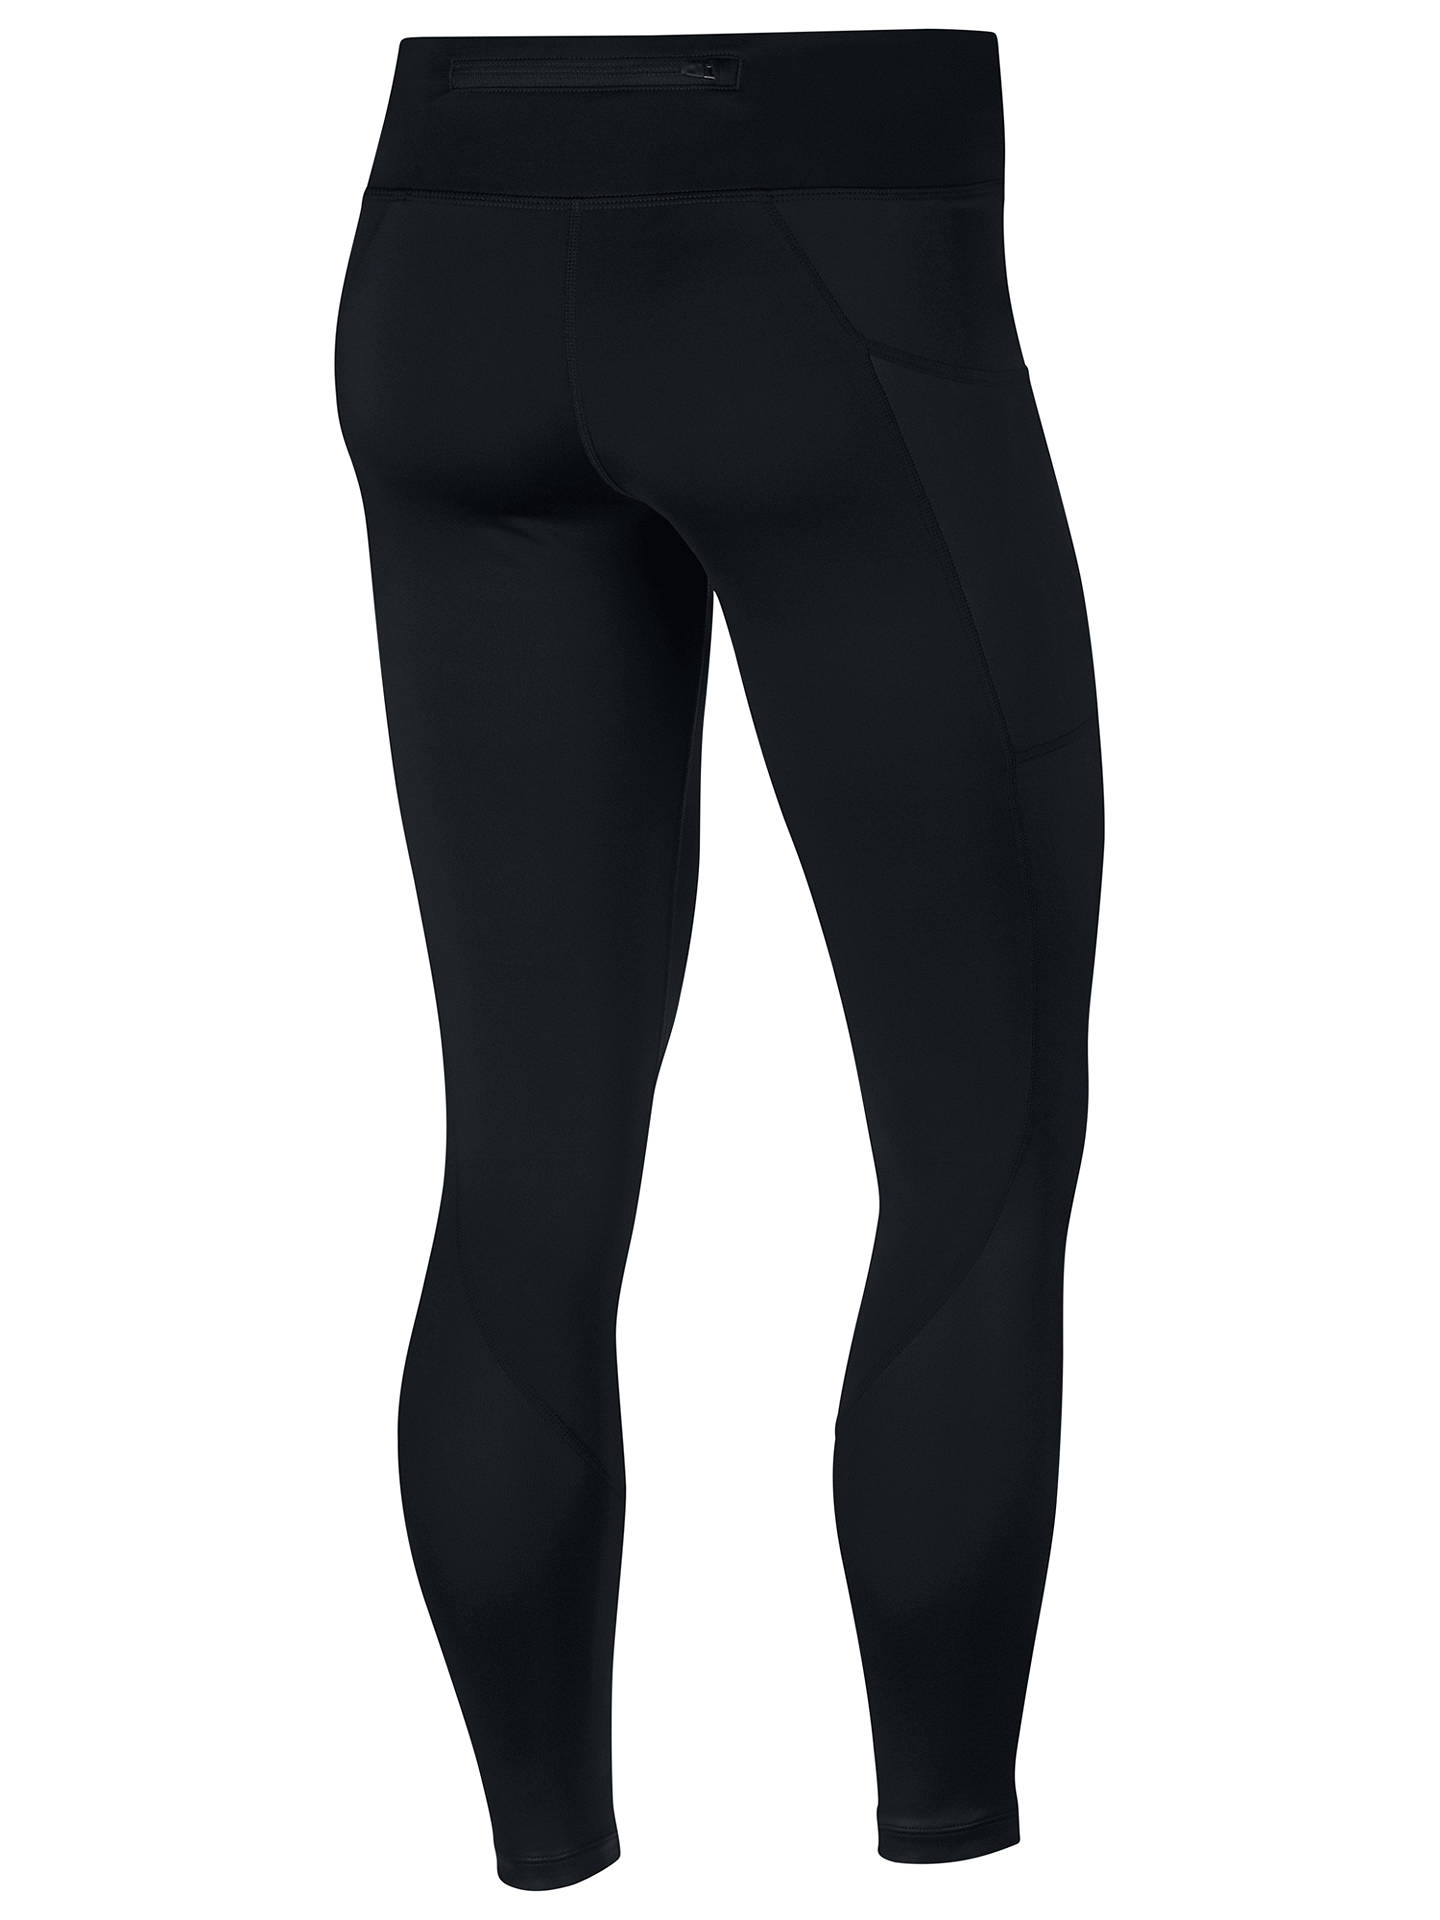 86ce82e5a73859 ... Buy Nike Power Racer Women's Running Tights, Black, XS Online at  johnlewis.com